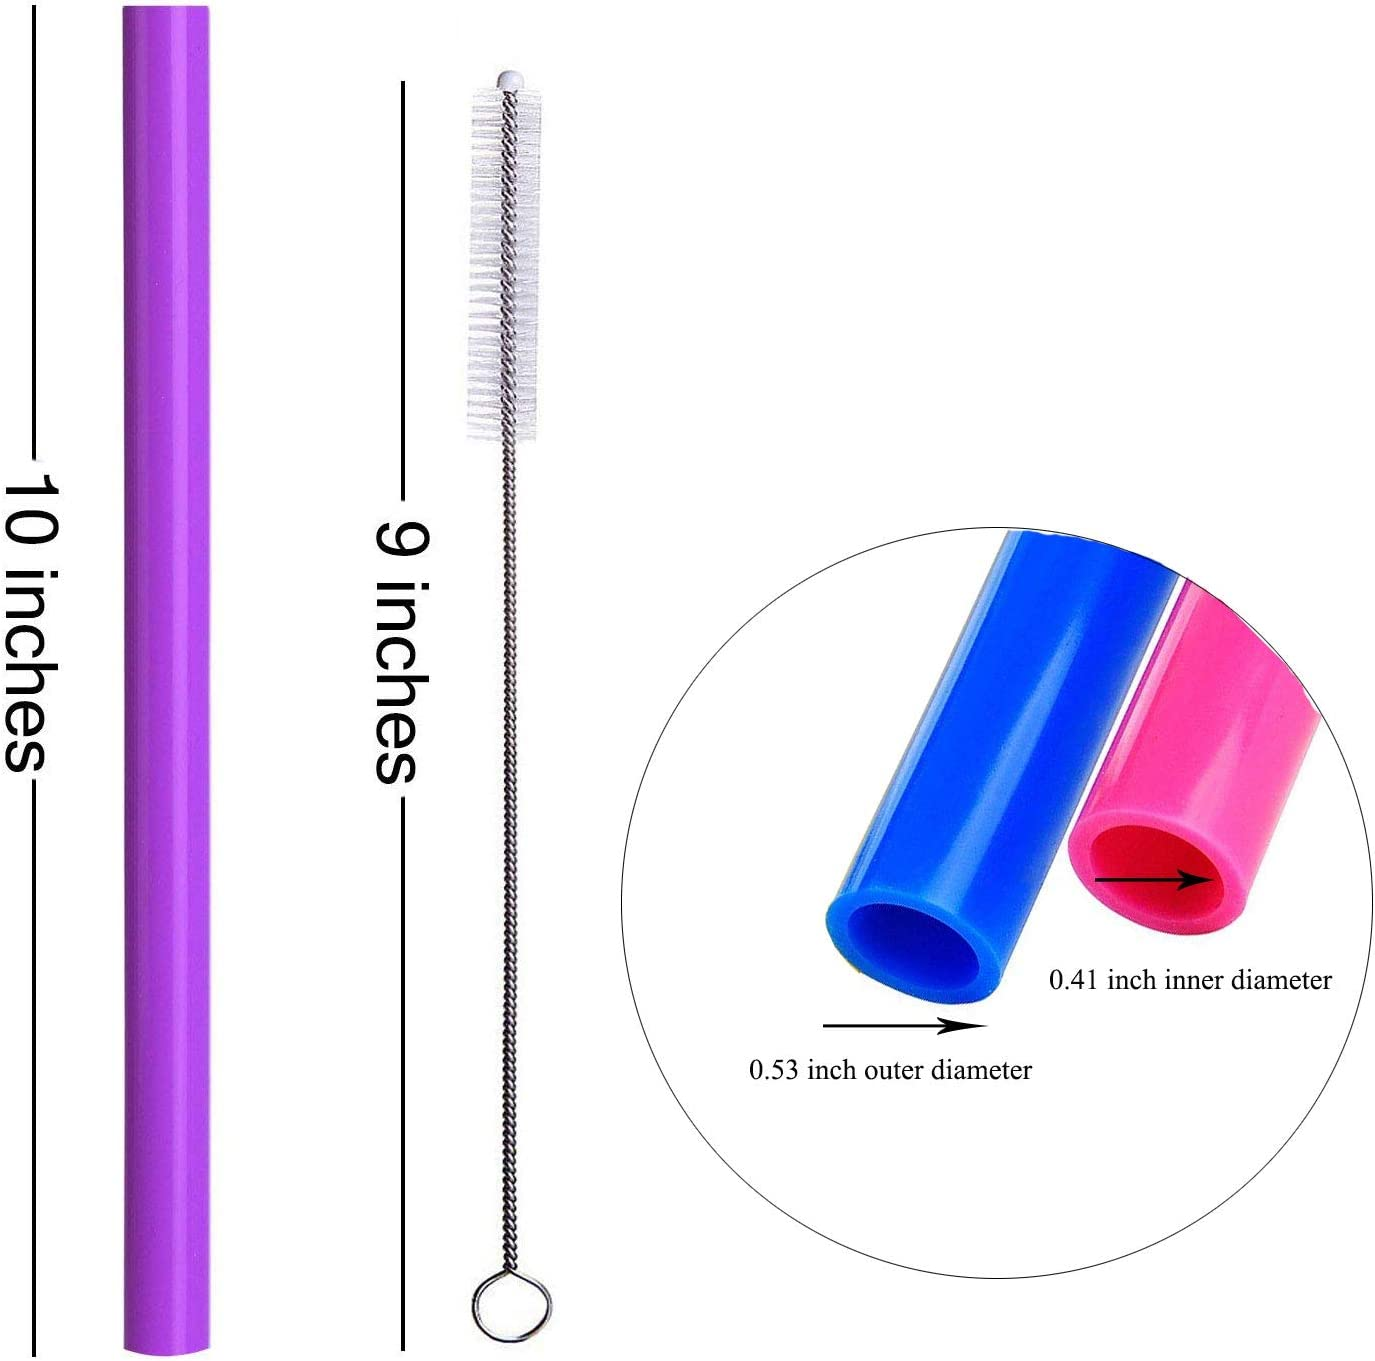 """ALINK Reusable Boba Smoothie Straws, 10"""" Long Extra Wide Fat Silicone Straws for Drinking Bubble Tea, Milkshakes, Set of 6 with Cleaning Brush"""